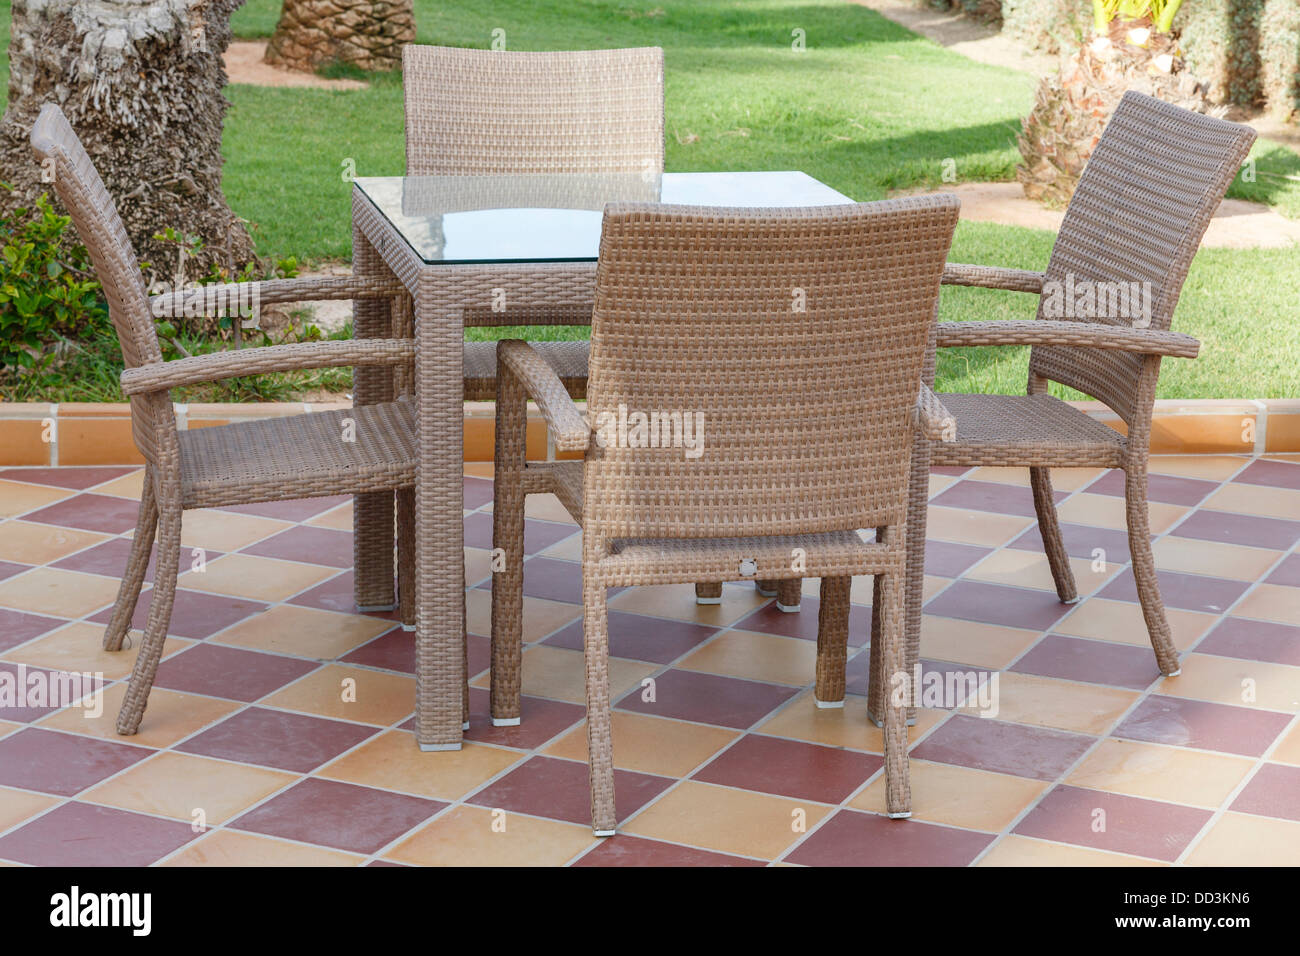 Cane Outdoor Patio Furniture With Glass Table And Chairs On Tiled Floor    Stock Image